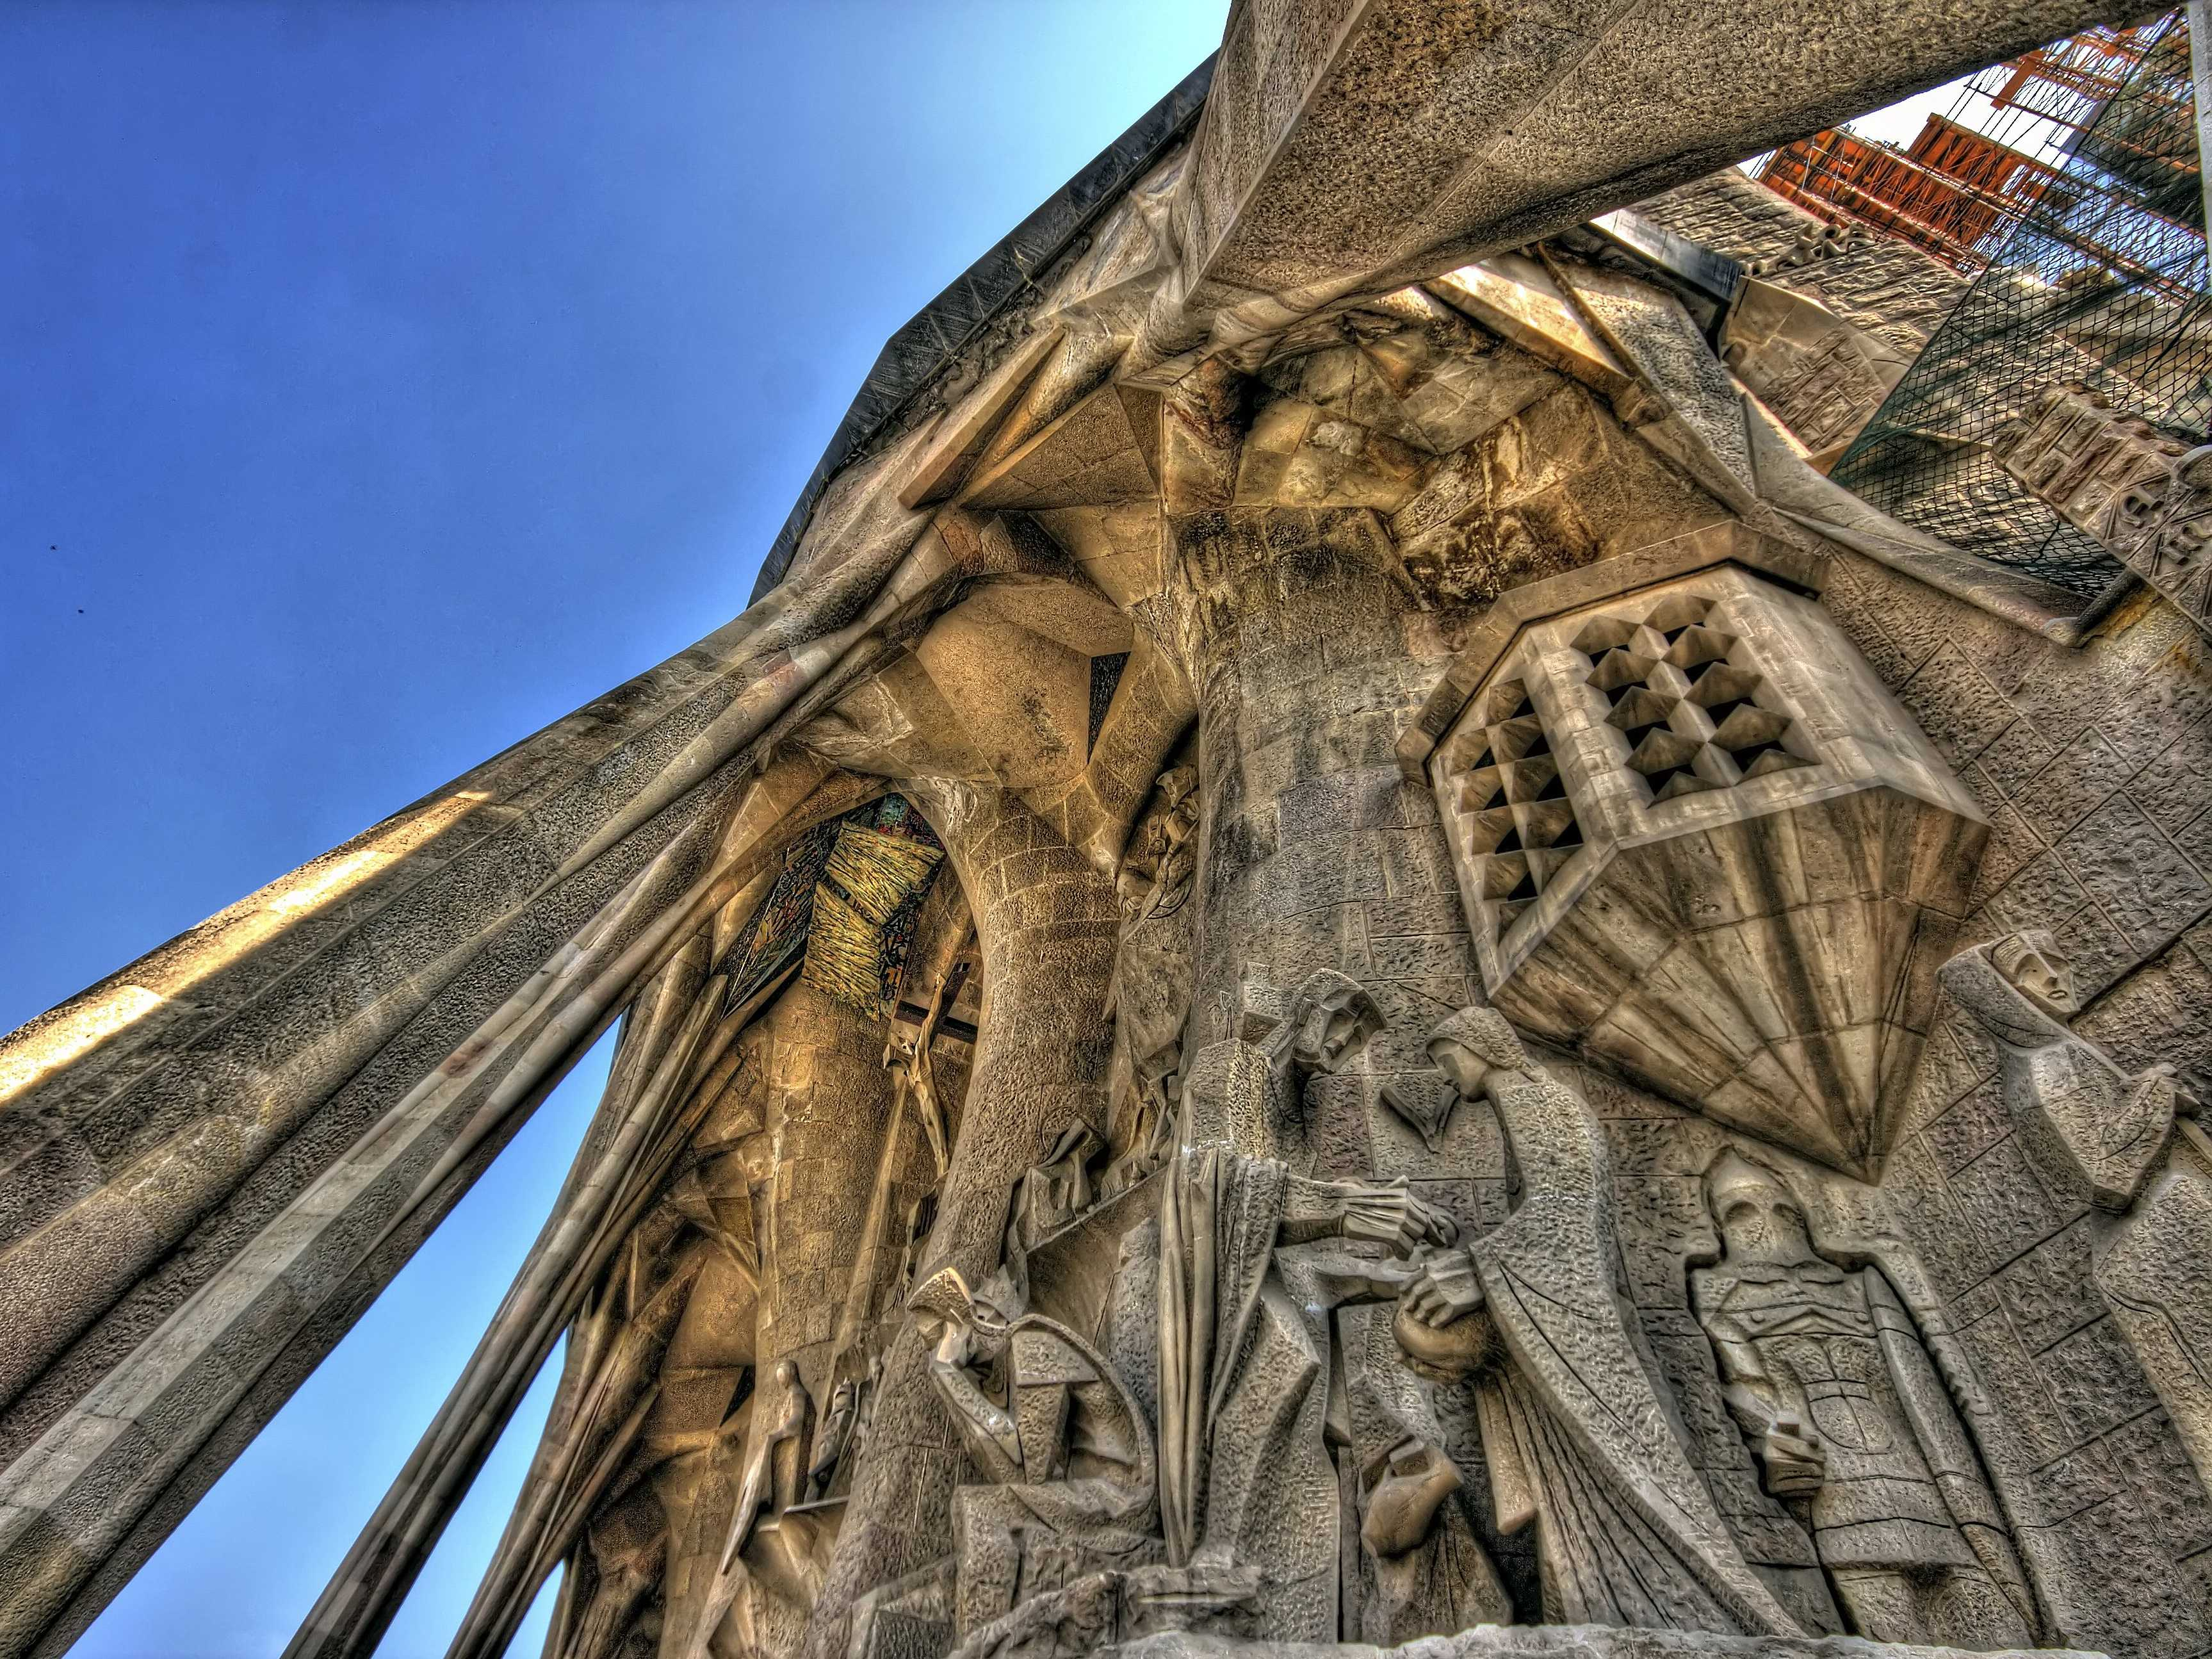 Construction started on la Sagrada Família in Barcelona in 1882. While surreally breathtaking, the cathedral is still being built.